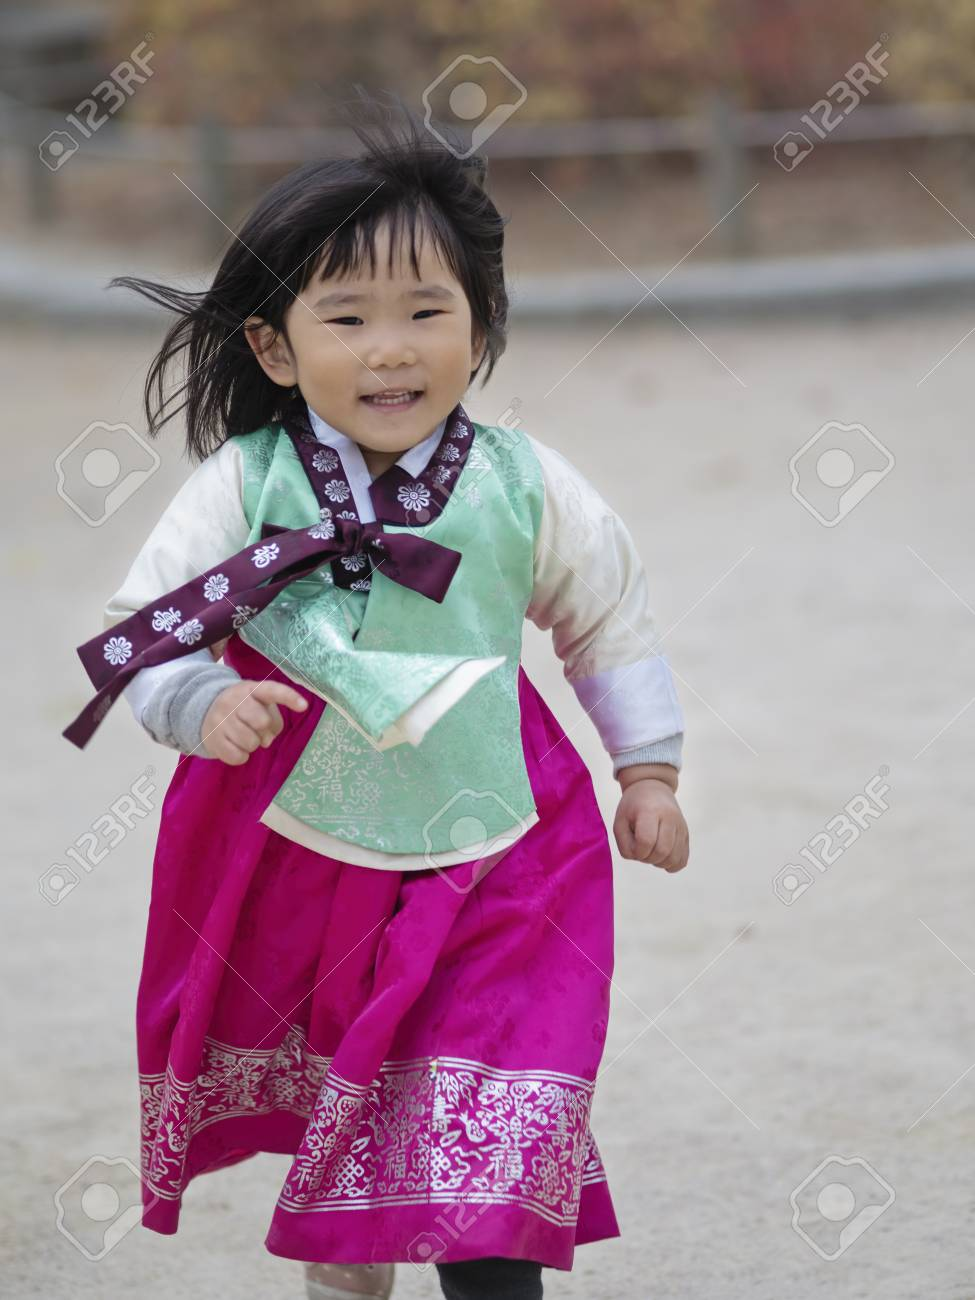 91157174 seoul south korea 10th november 2017 young korean girl in traditional hanbok dress at gyeongbokkung  » How to Care for Your Jamaican Wife